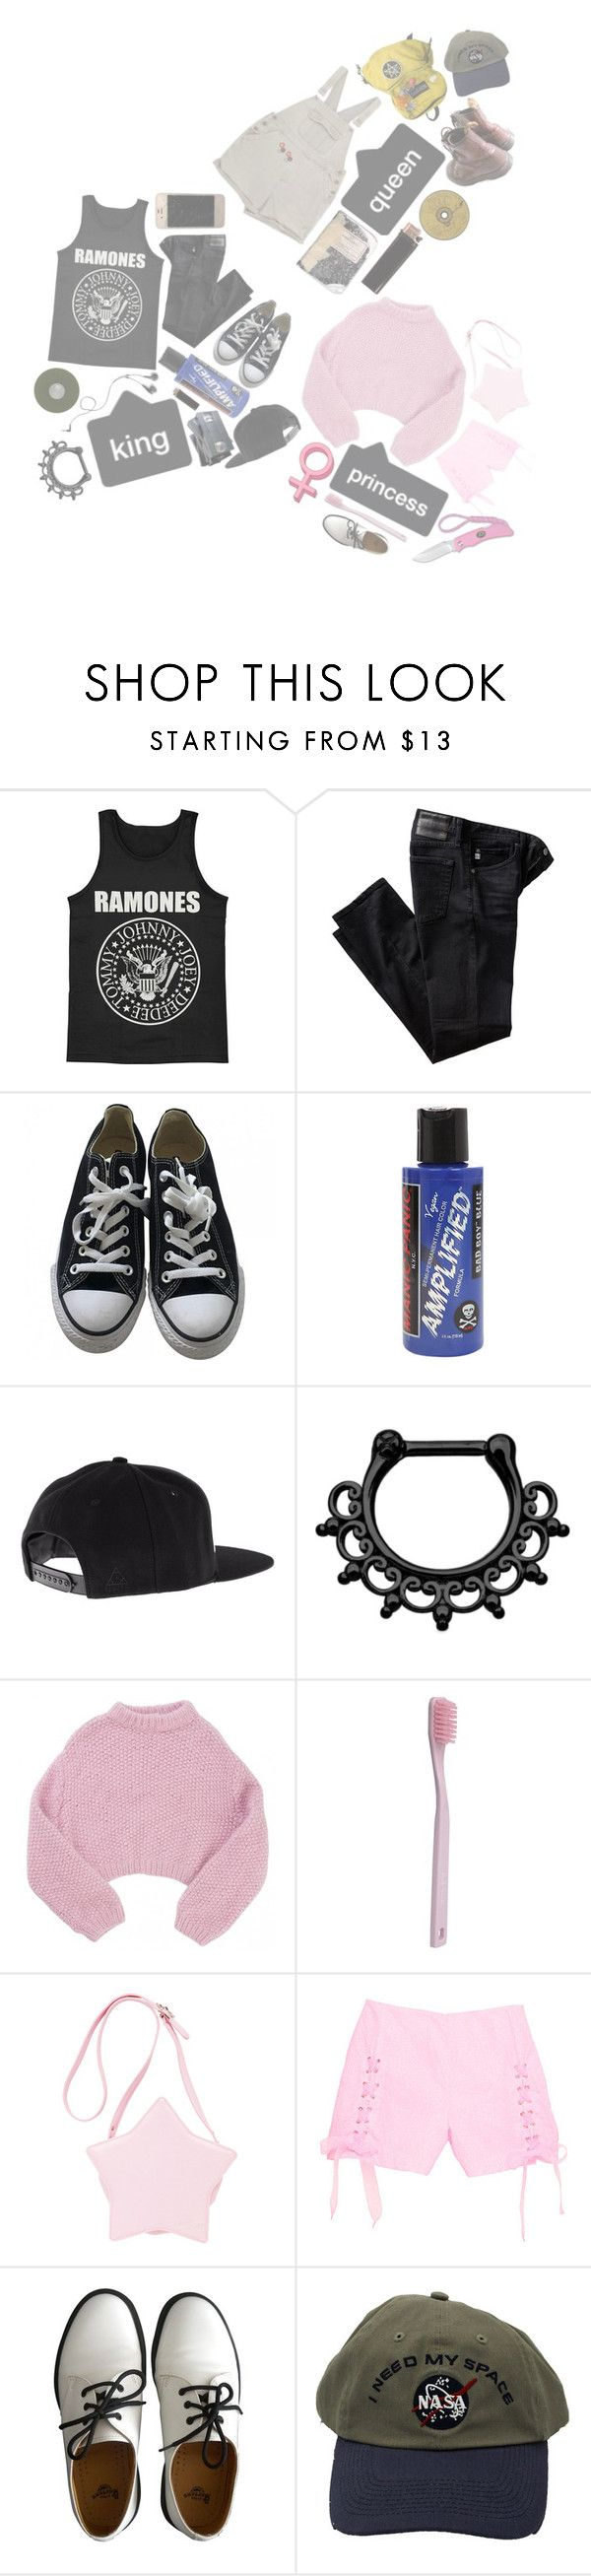 """""""Jen, Halsey n Mel !!"""" by xxanormalalienxx ❤ liked on Polyvore featuring AG Adriano Goldschmied, Converse, Manic Panic NYC, CO, GAS Jeans, Lala Berlin, Paul Smith and Dr. Martens"""